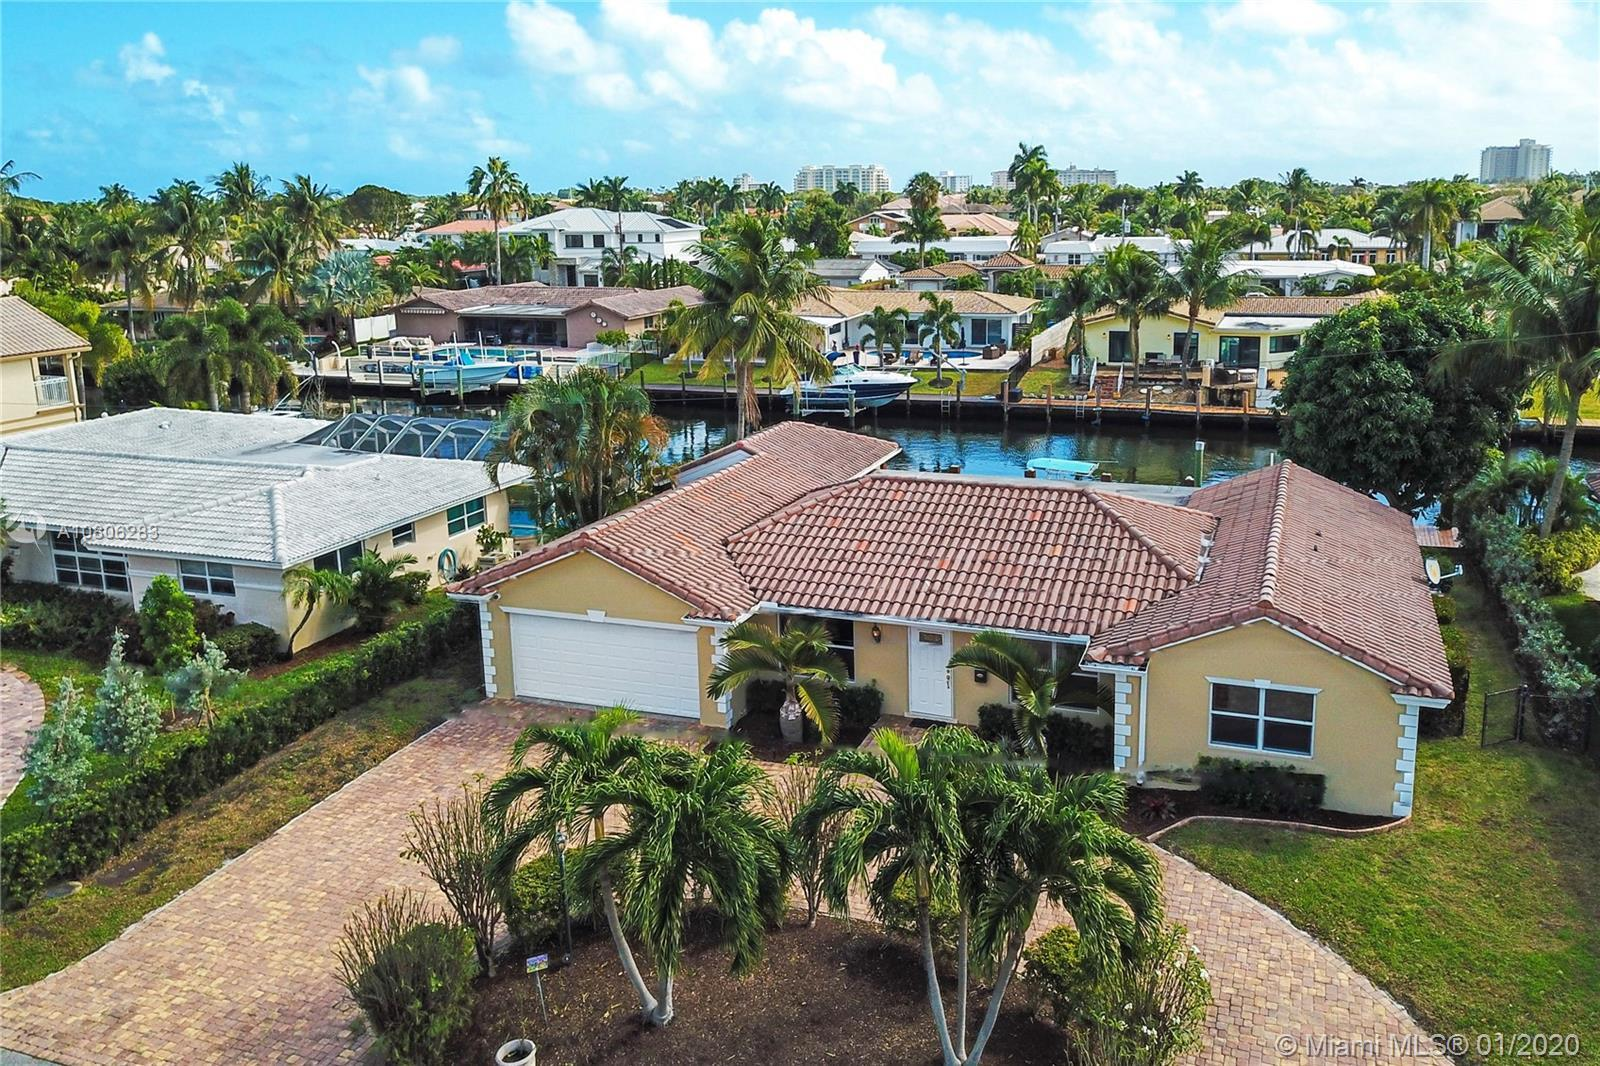 EXTRAORDINARY WATERFRONT 3-BEDROOMS AND 3-BATHROOMS SINGLE FAMILY HOME WITH 80-FT PRIVATE DOCK IN DE